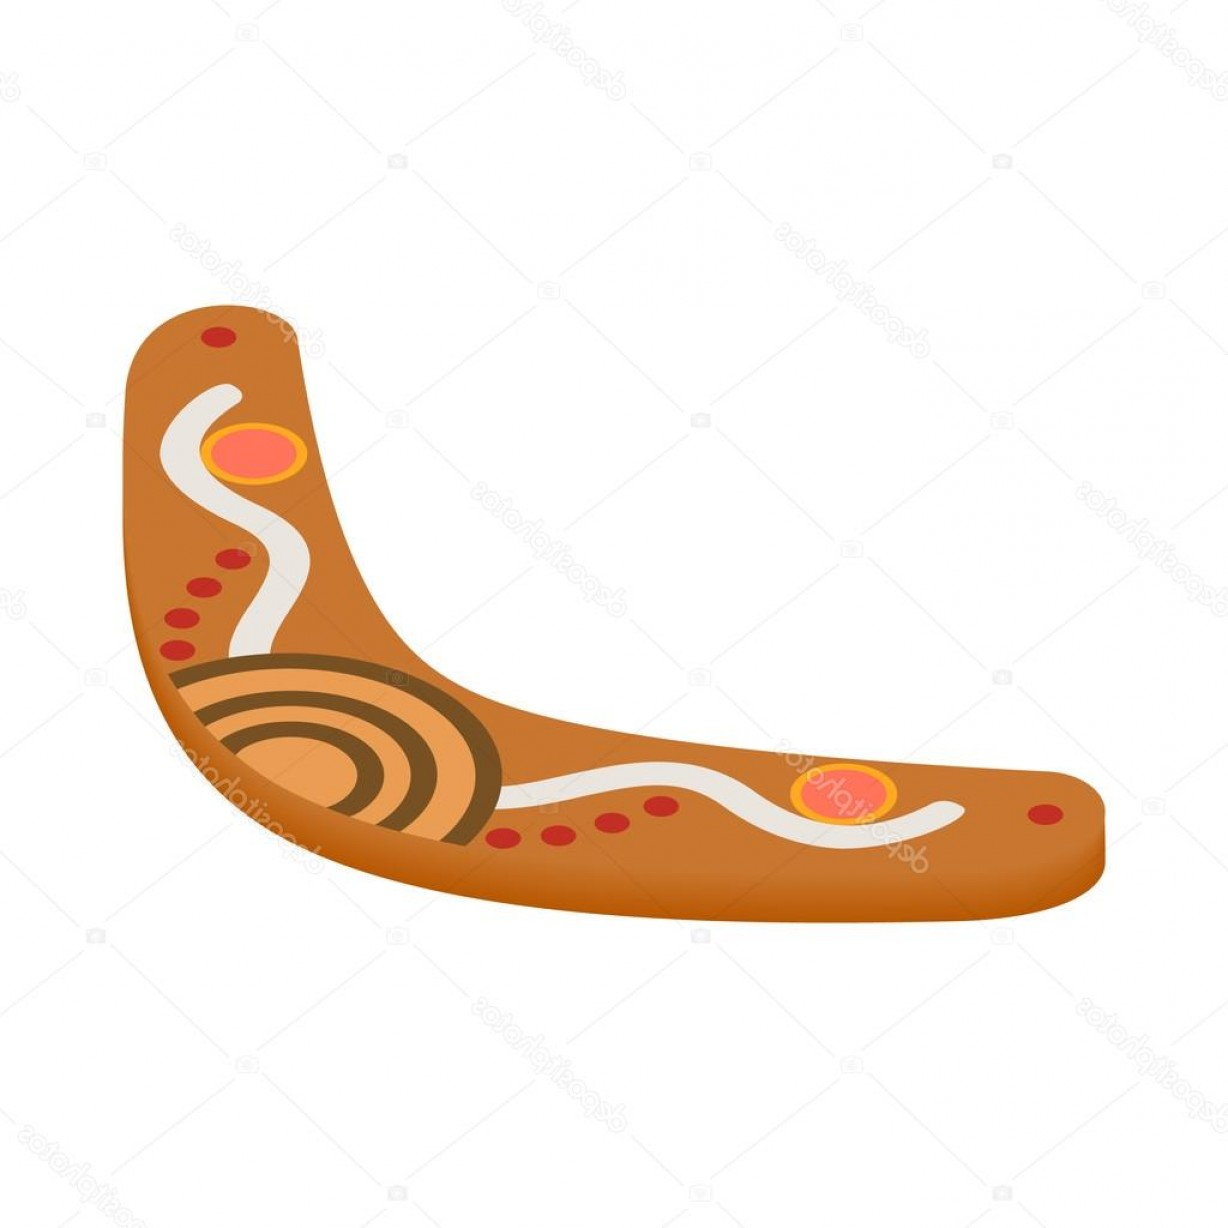 Boomerang Vector Curve: Stock Illustration Boomerang Icon Isometric D Style